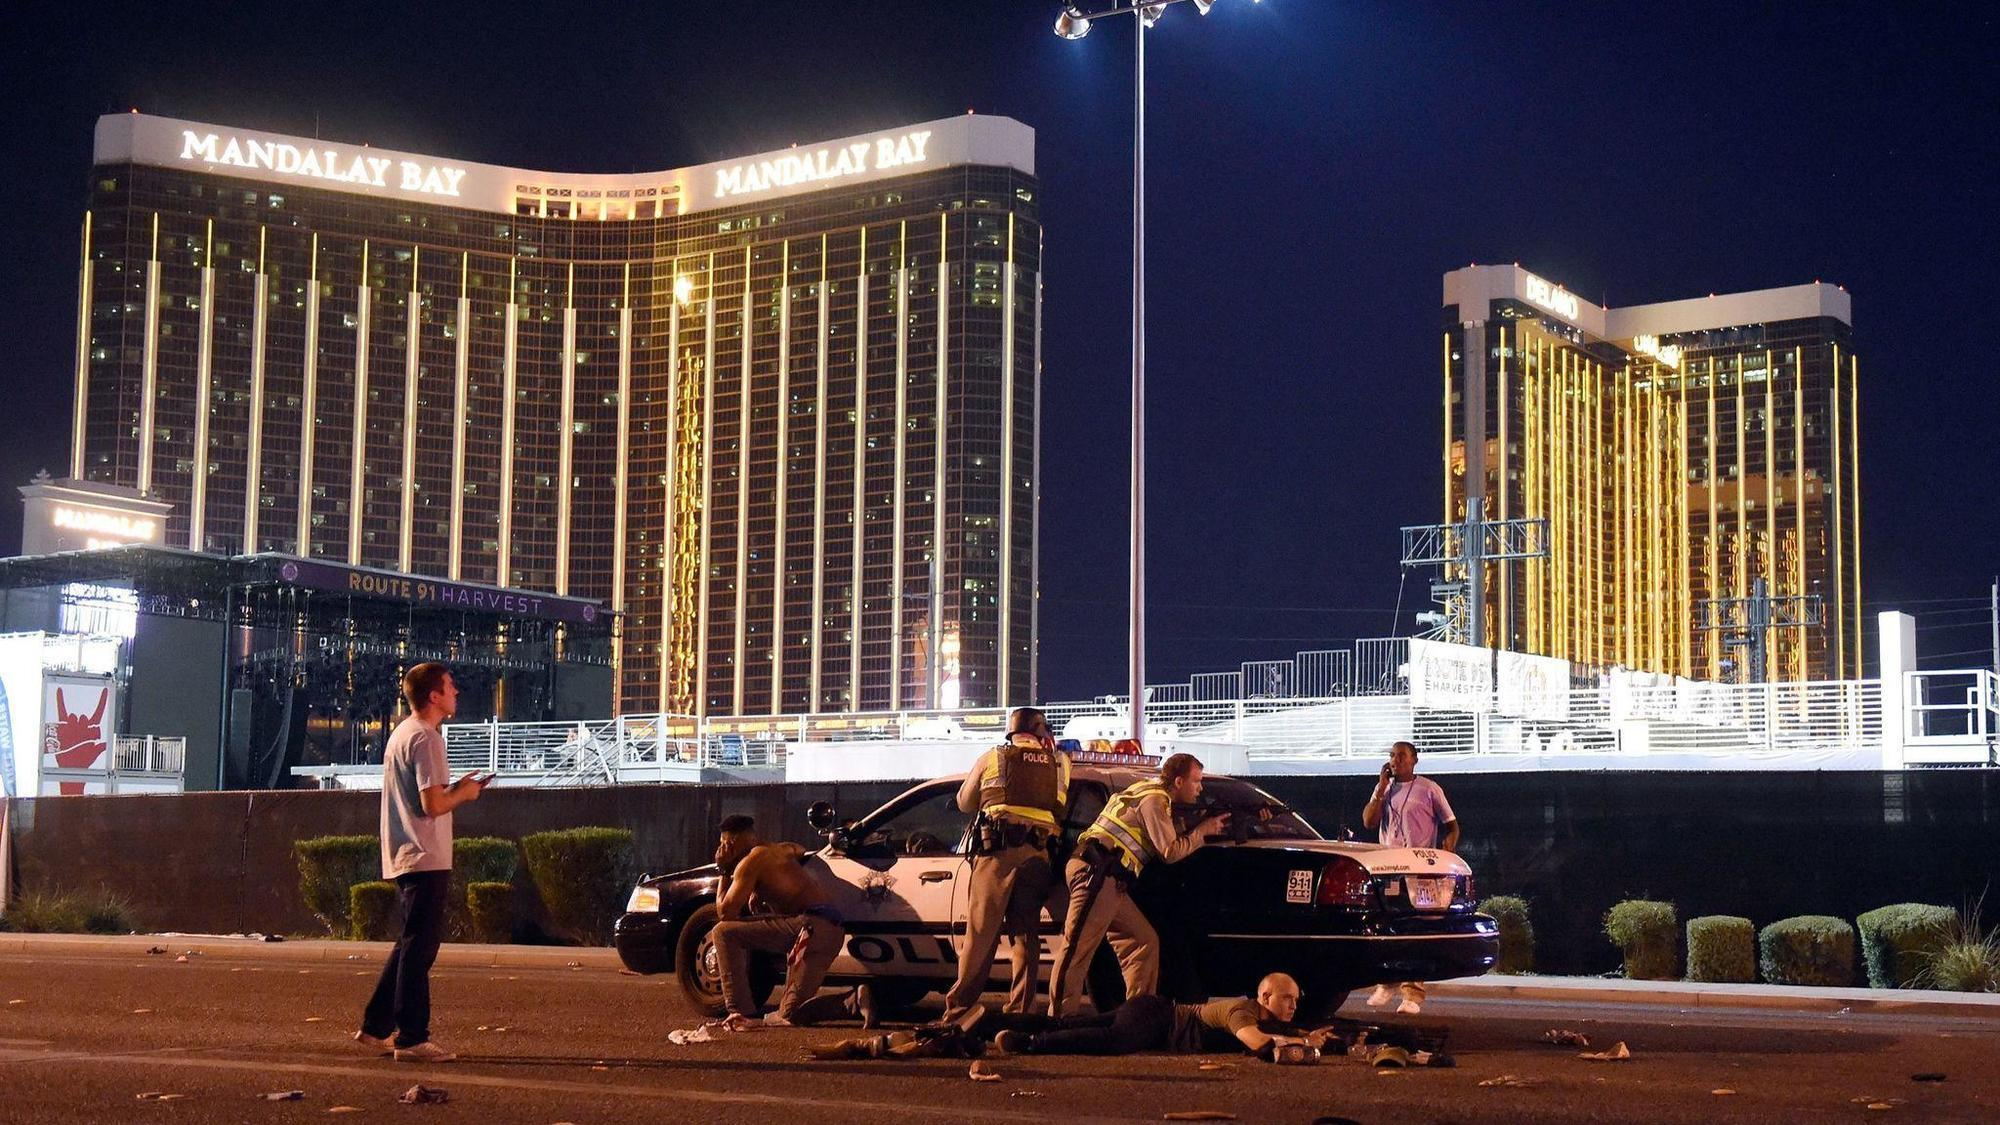 New disclosure shows a casino guard alerted hotel to gunman before Vegas massacre began. So why did it take so long to stop him?